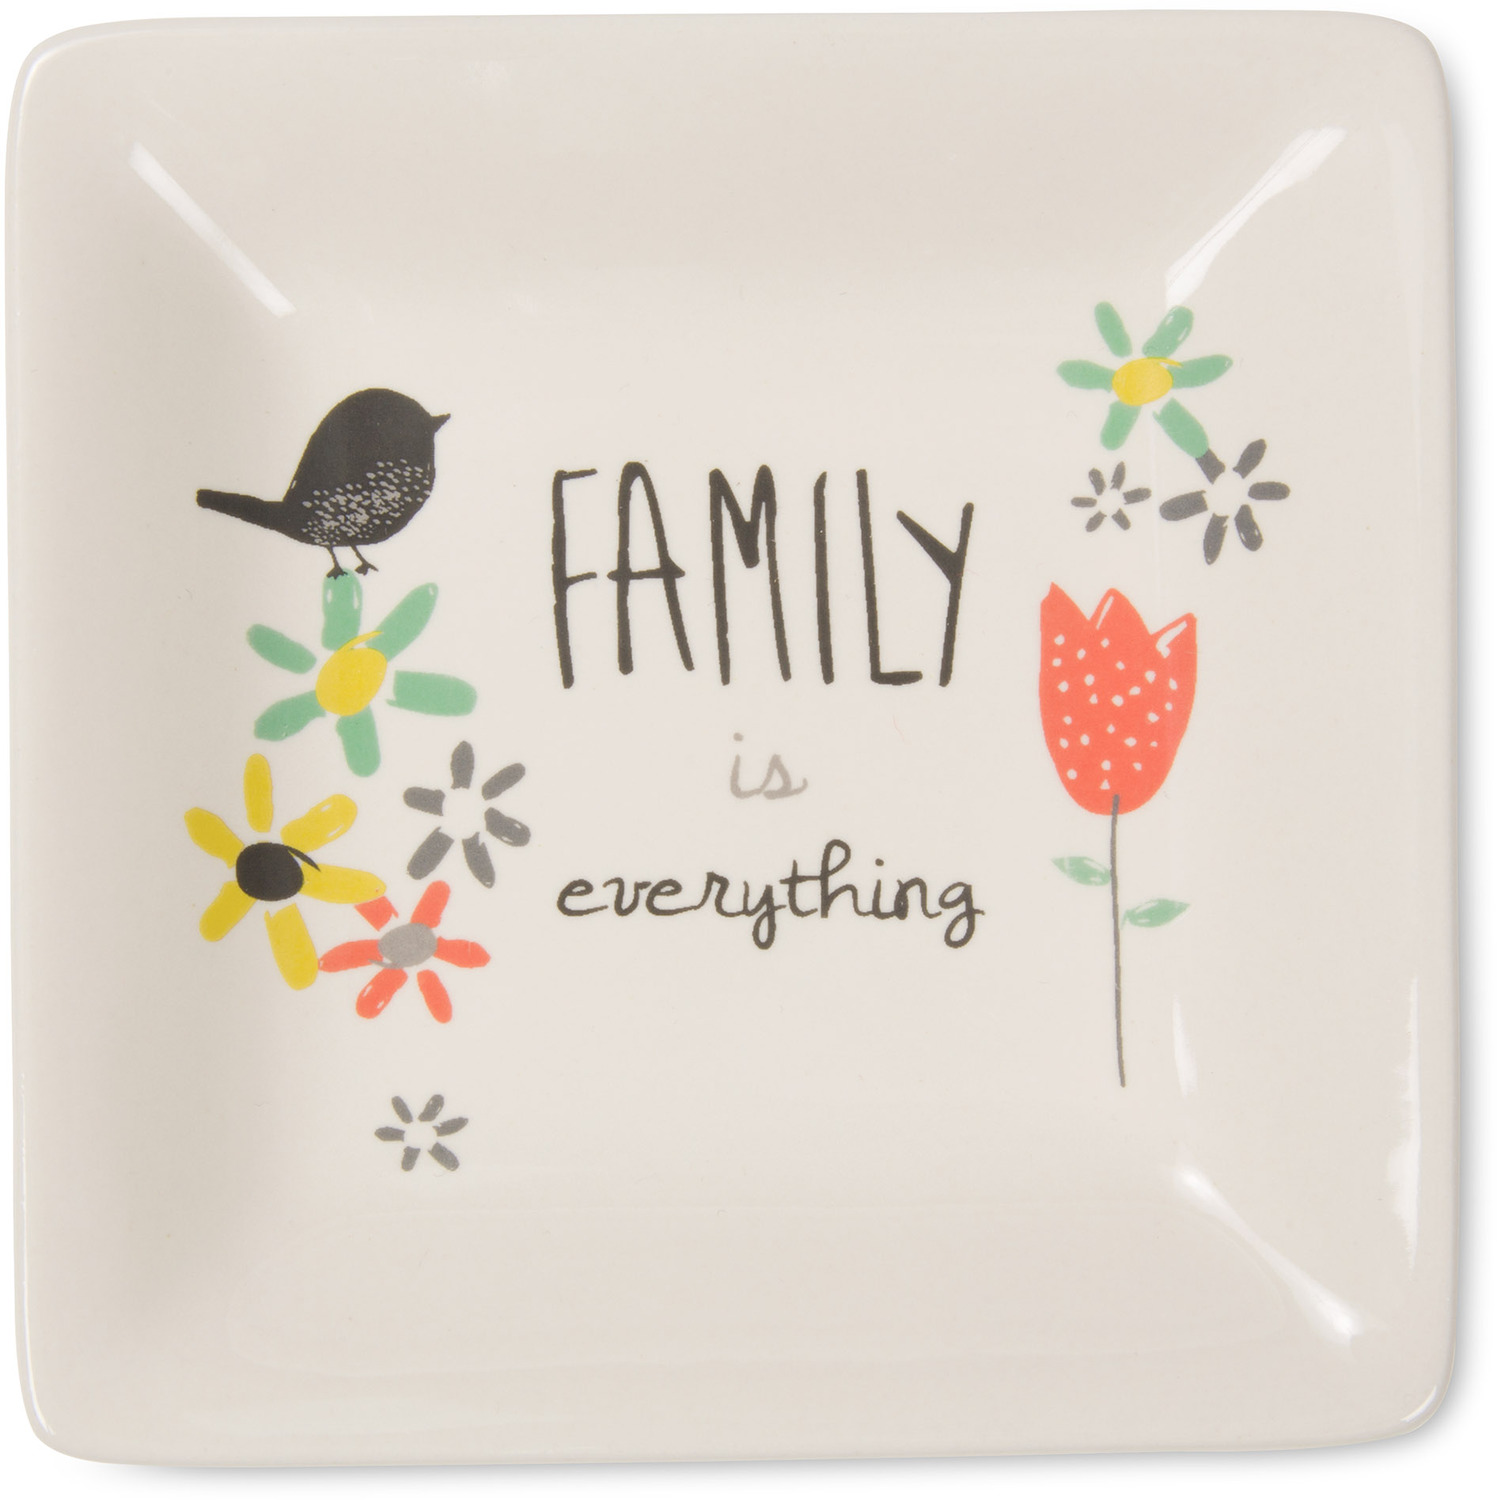 "Family by Bloom by Amylee Weeks - Family - 4.5"" Ceramic Keepsake Dish"